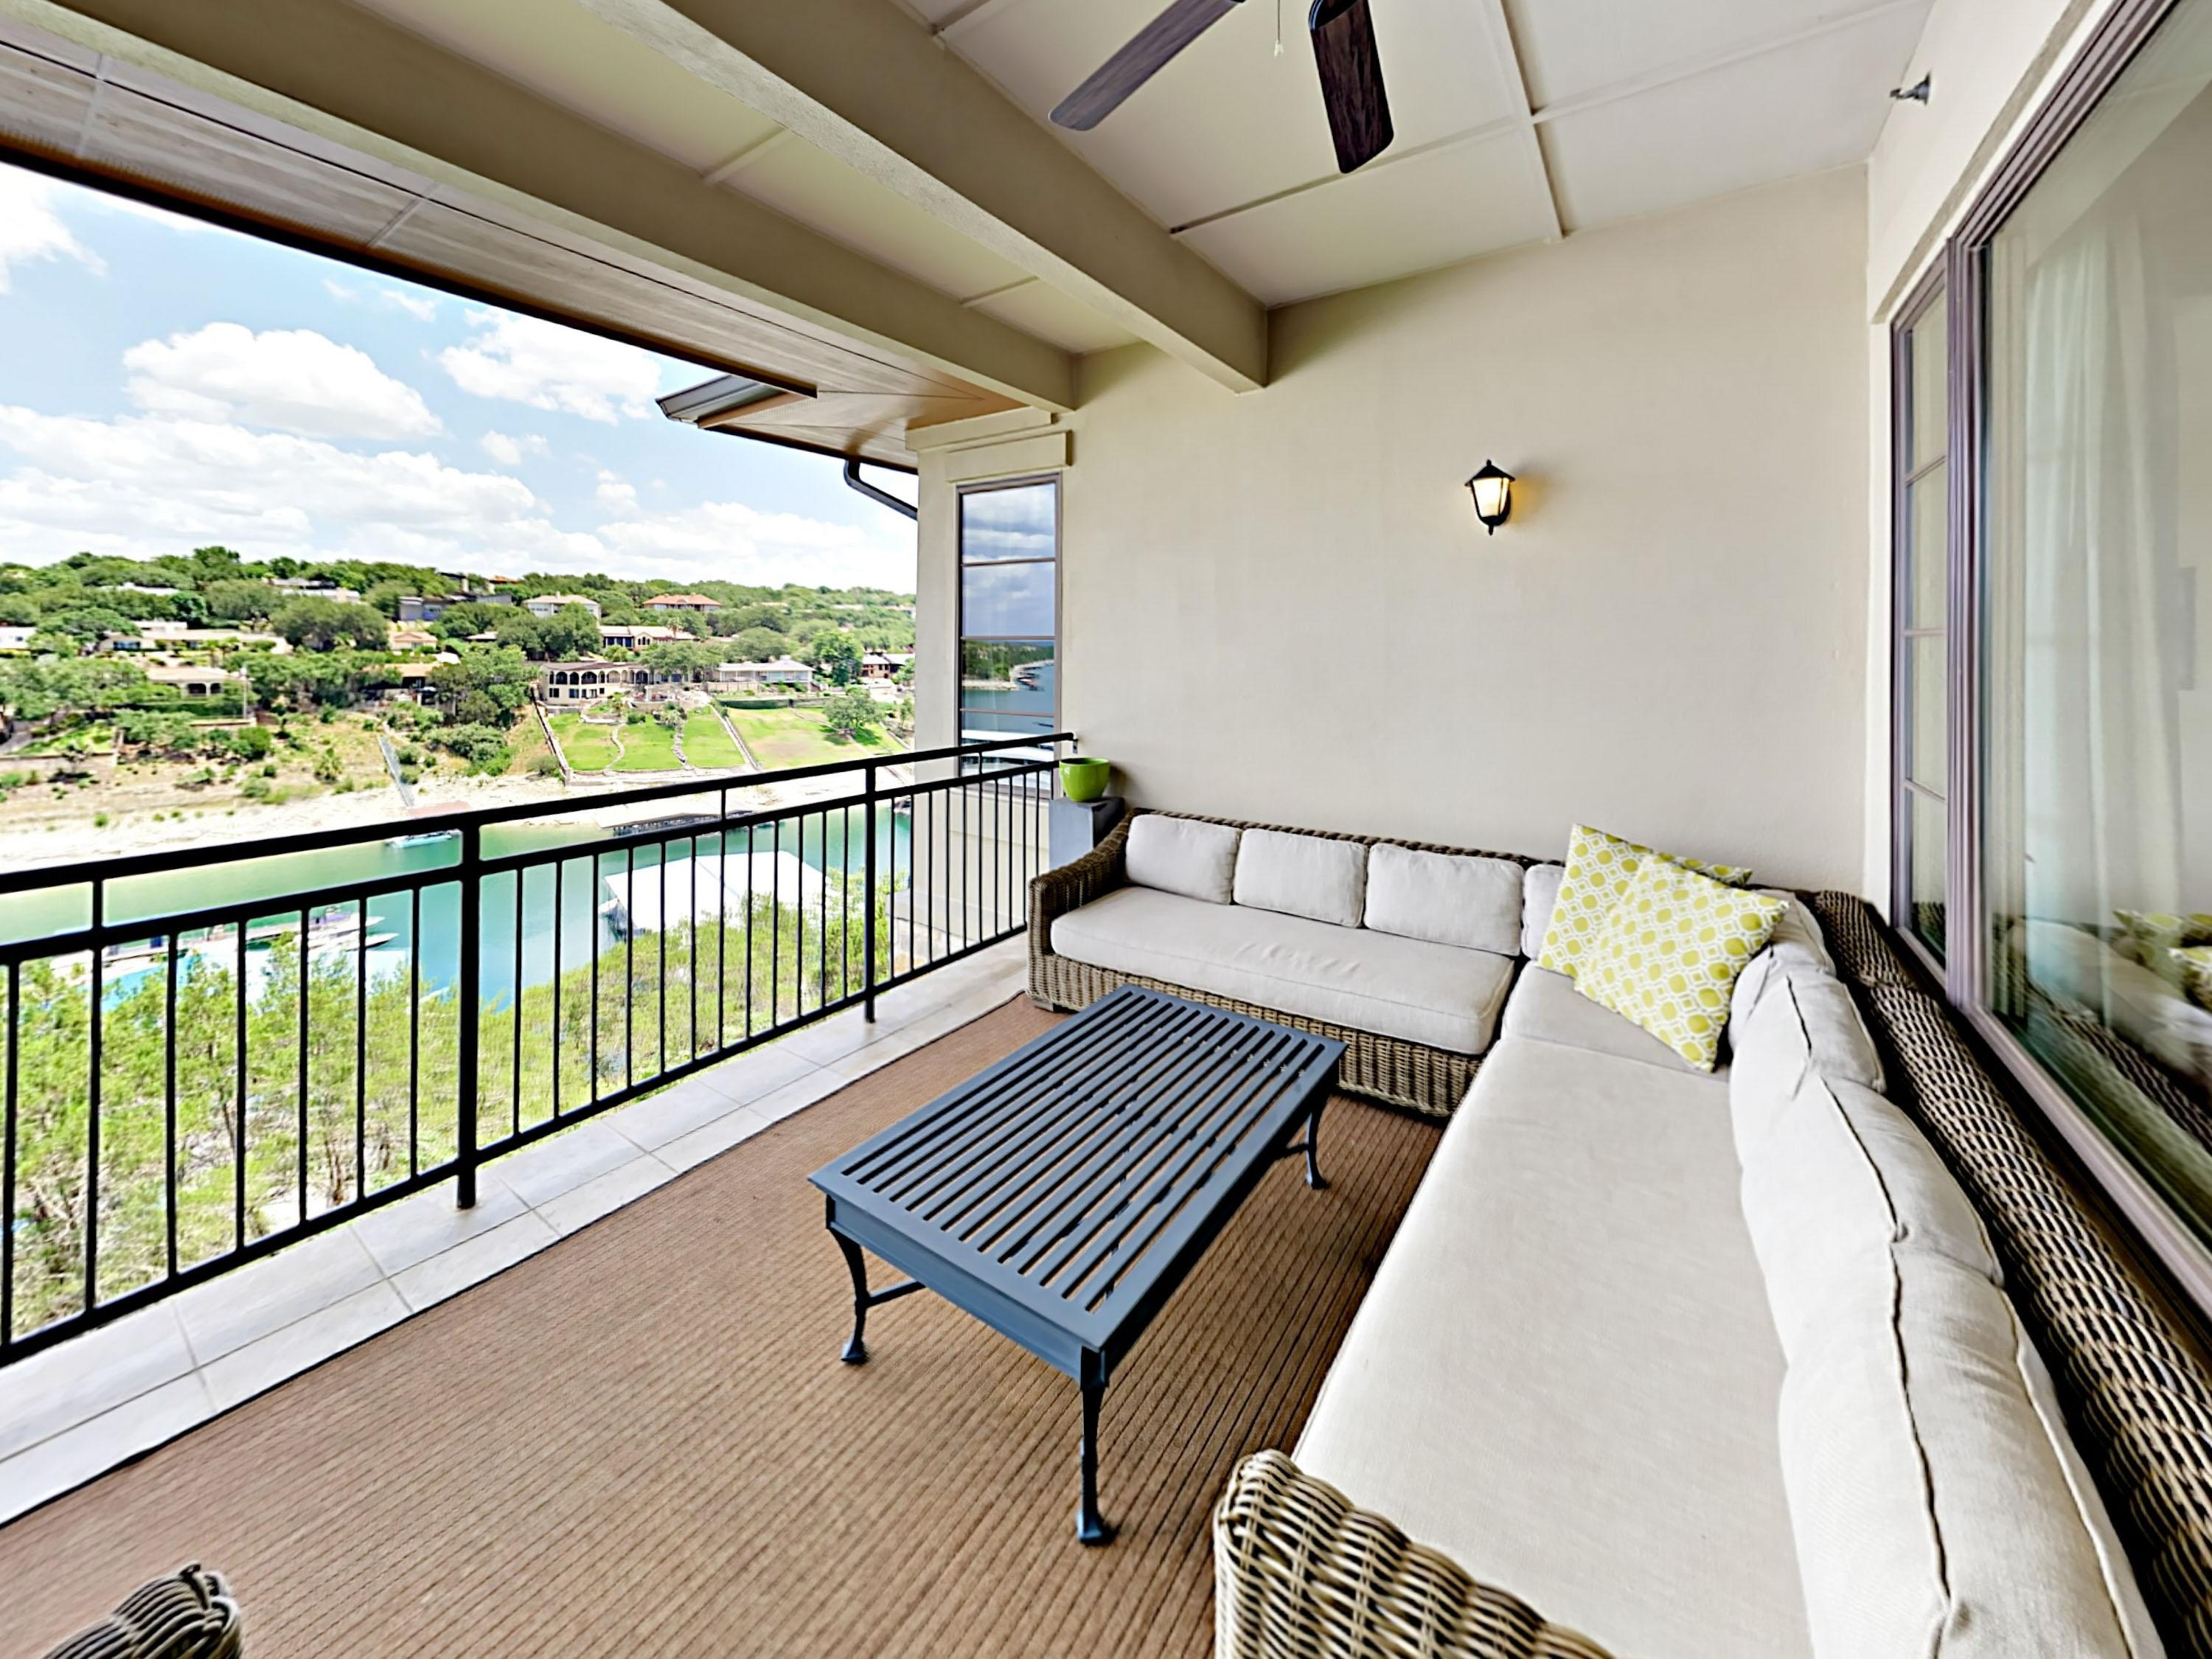 Welcome to Lakeway! This water-view condo on Lake Travis is professionally managed by TurnKey Vacation Rentals.